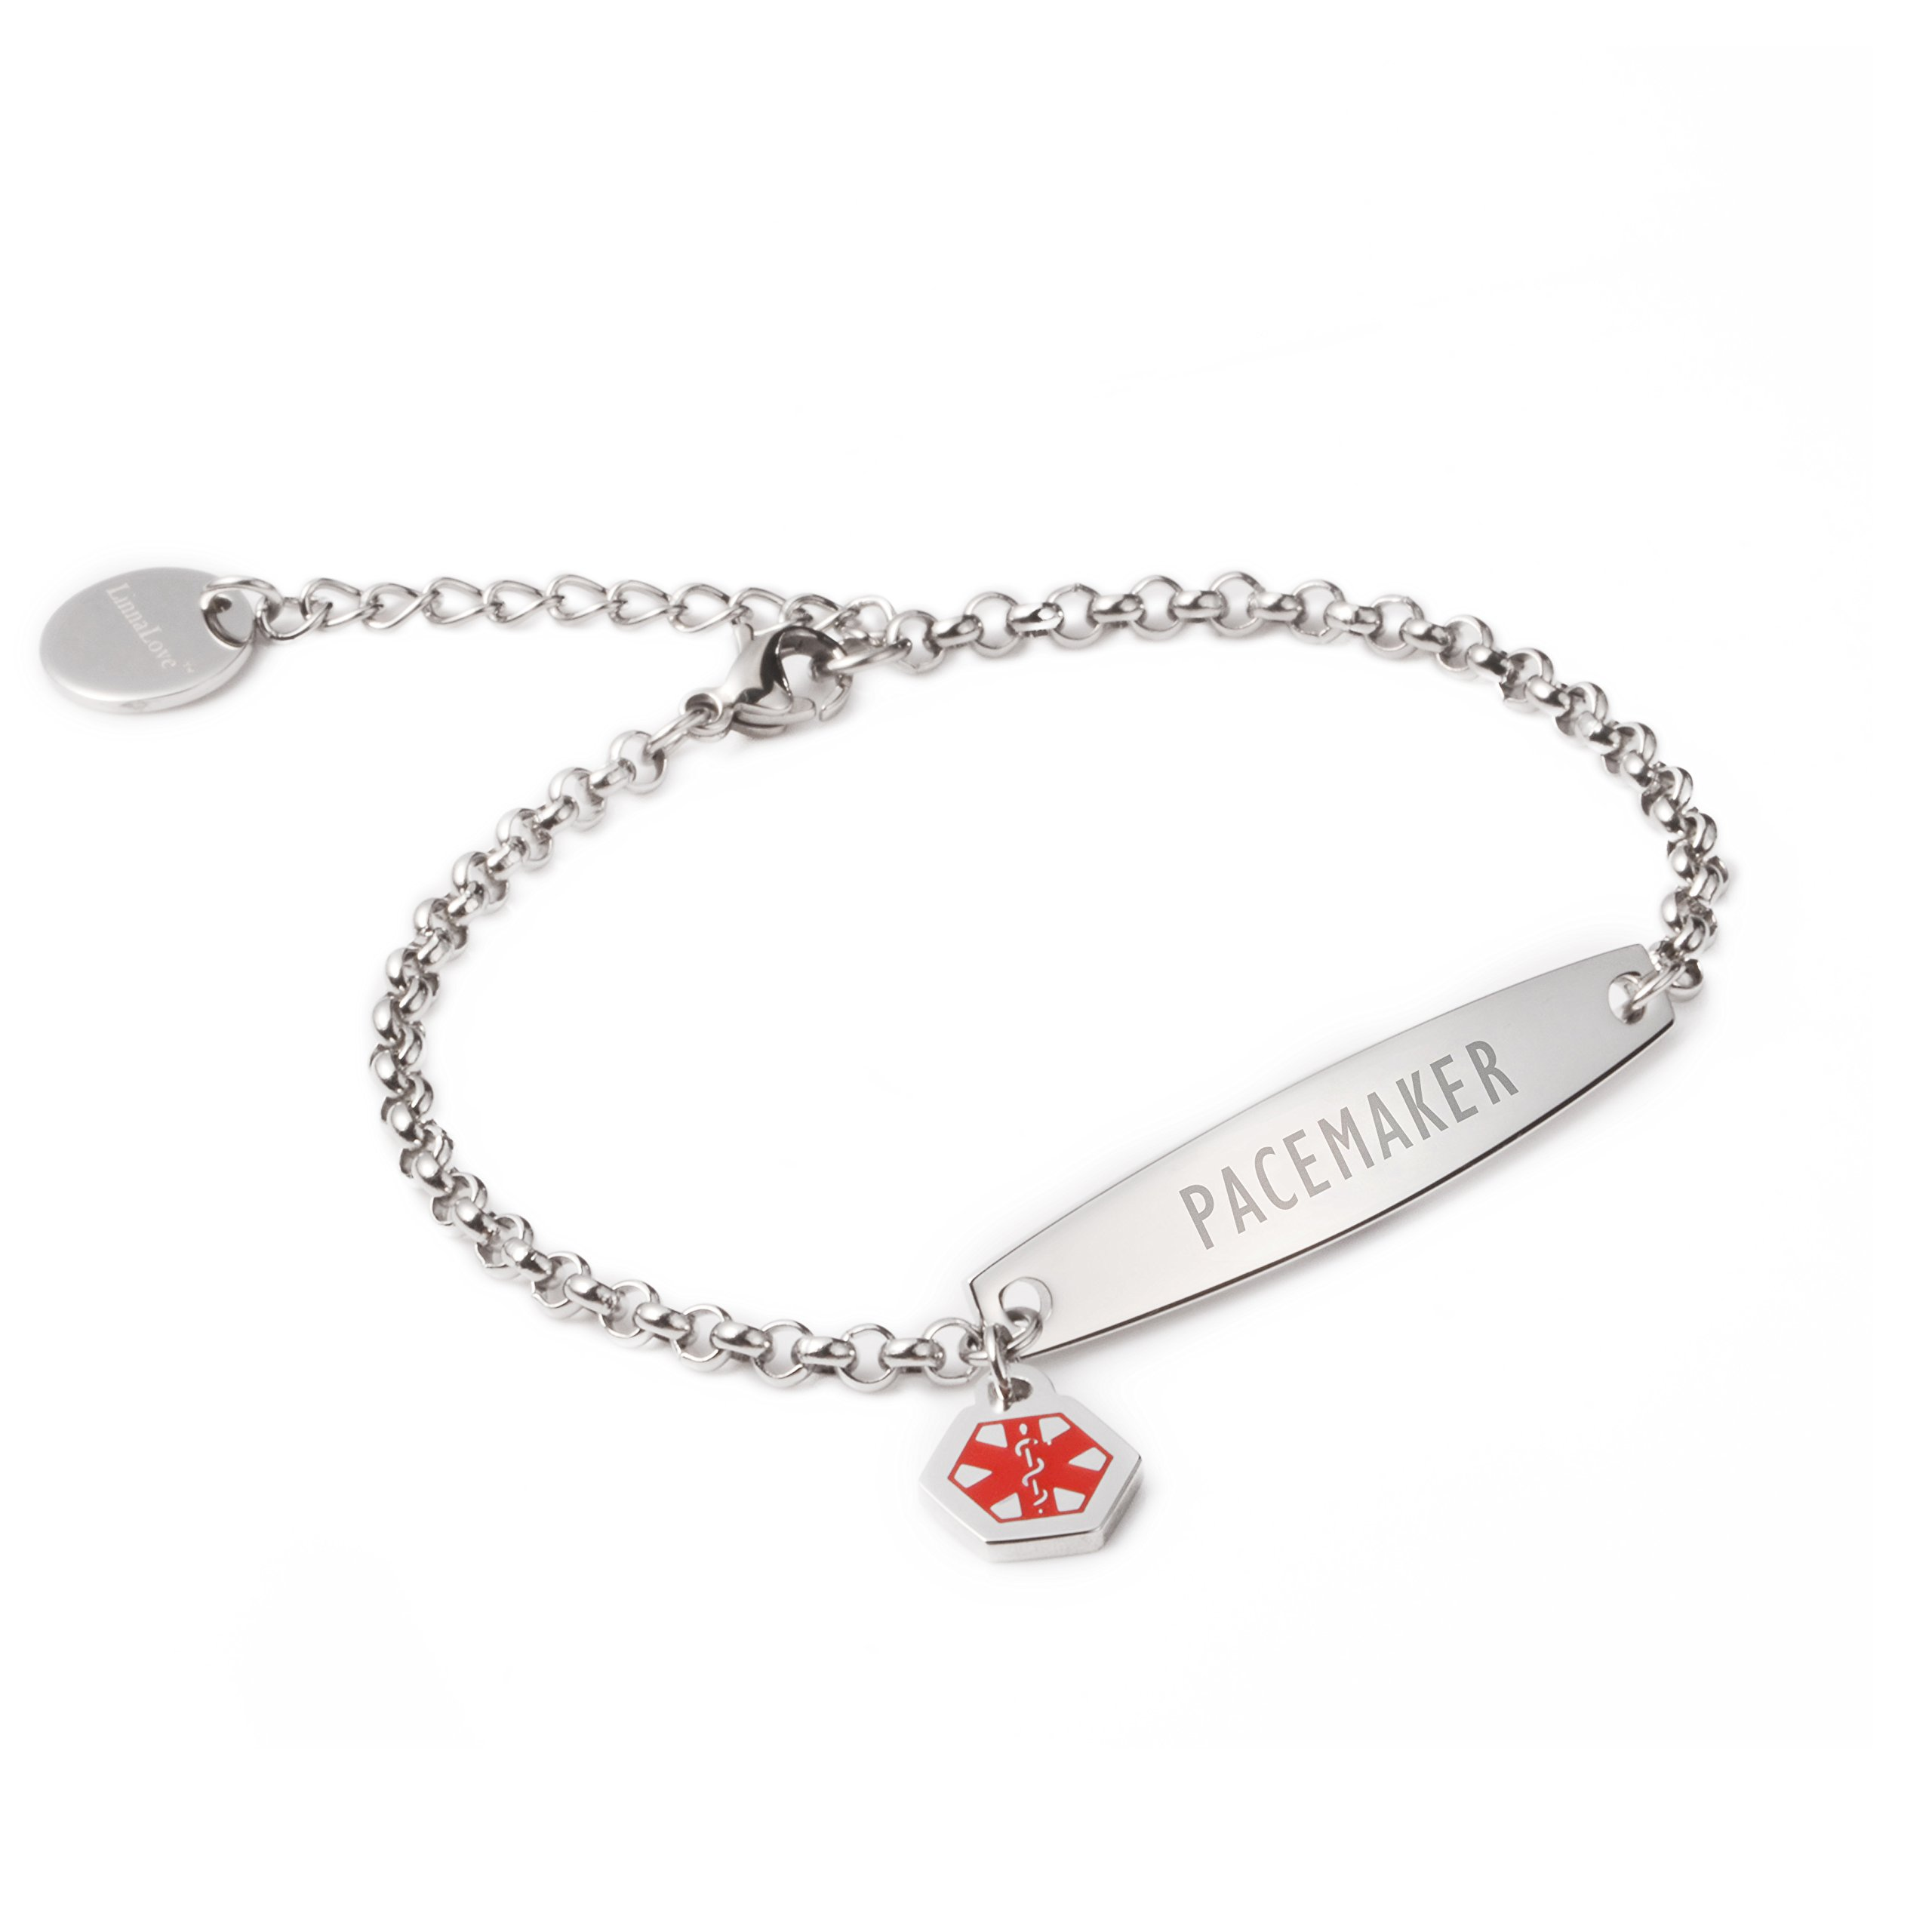 linnalove-Pre-Engraved Simple Rolo Chain Medical id Bracelet for Women & Girl-PACEMAKER by linnalove (Image #1)